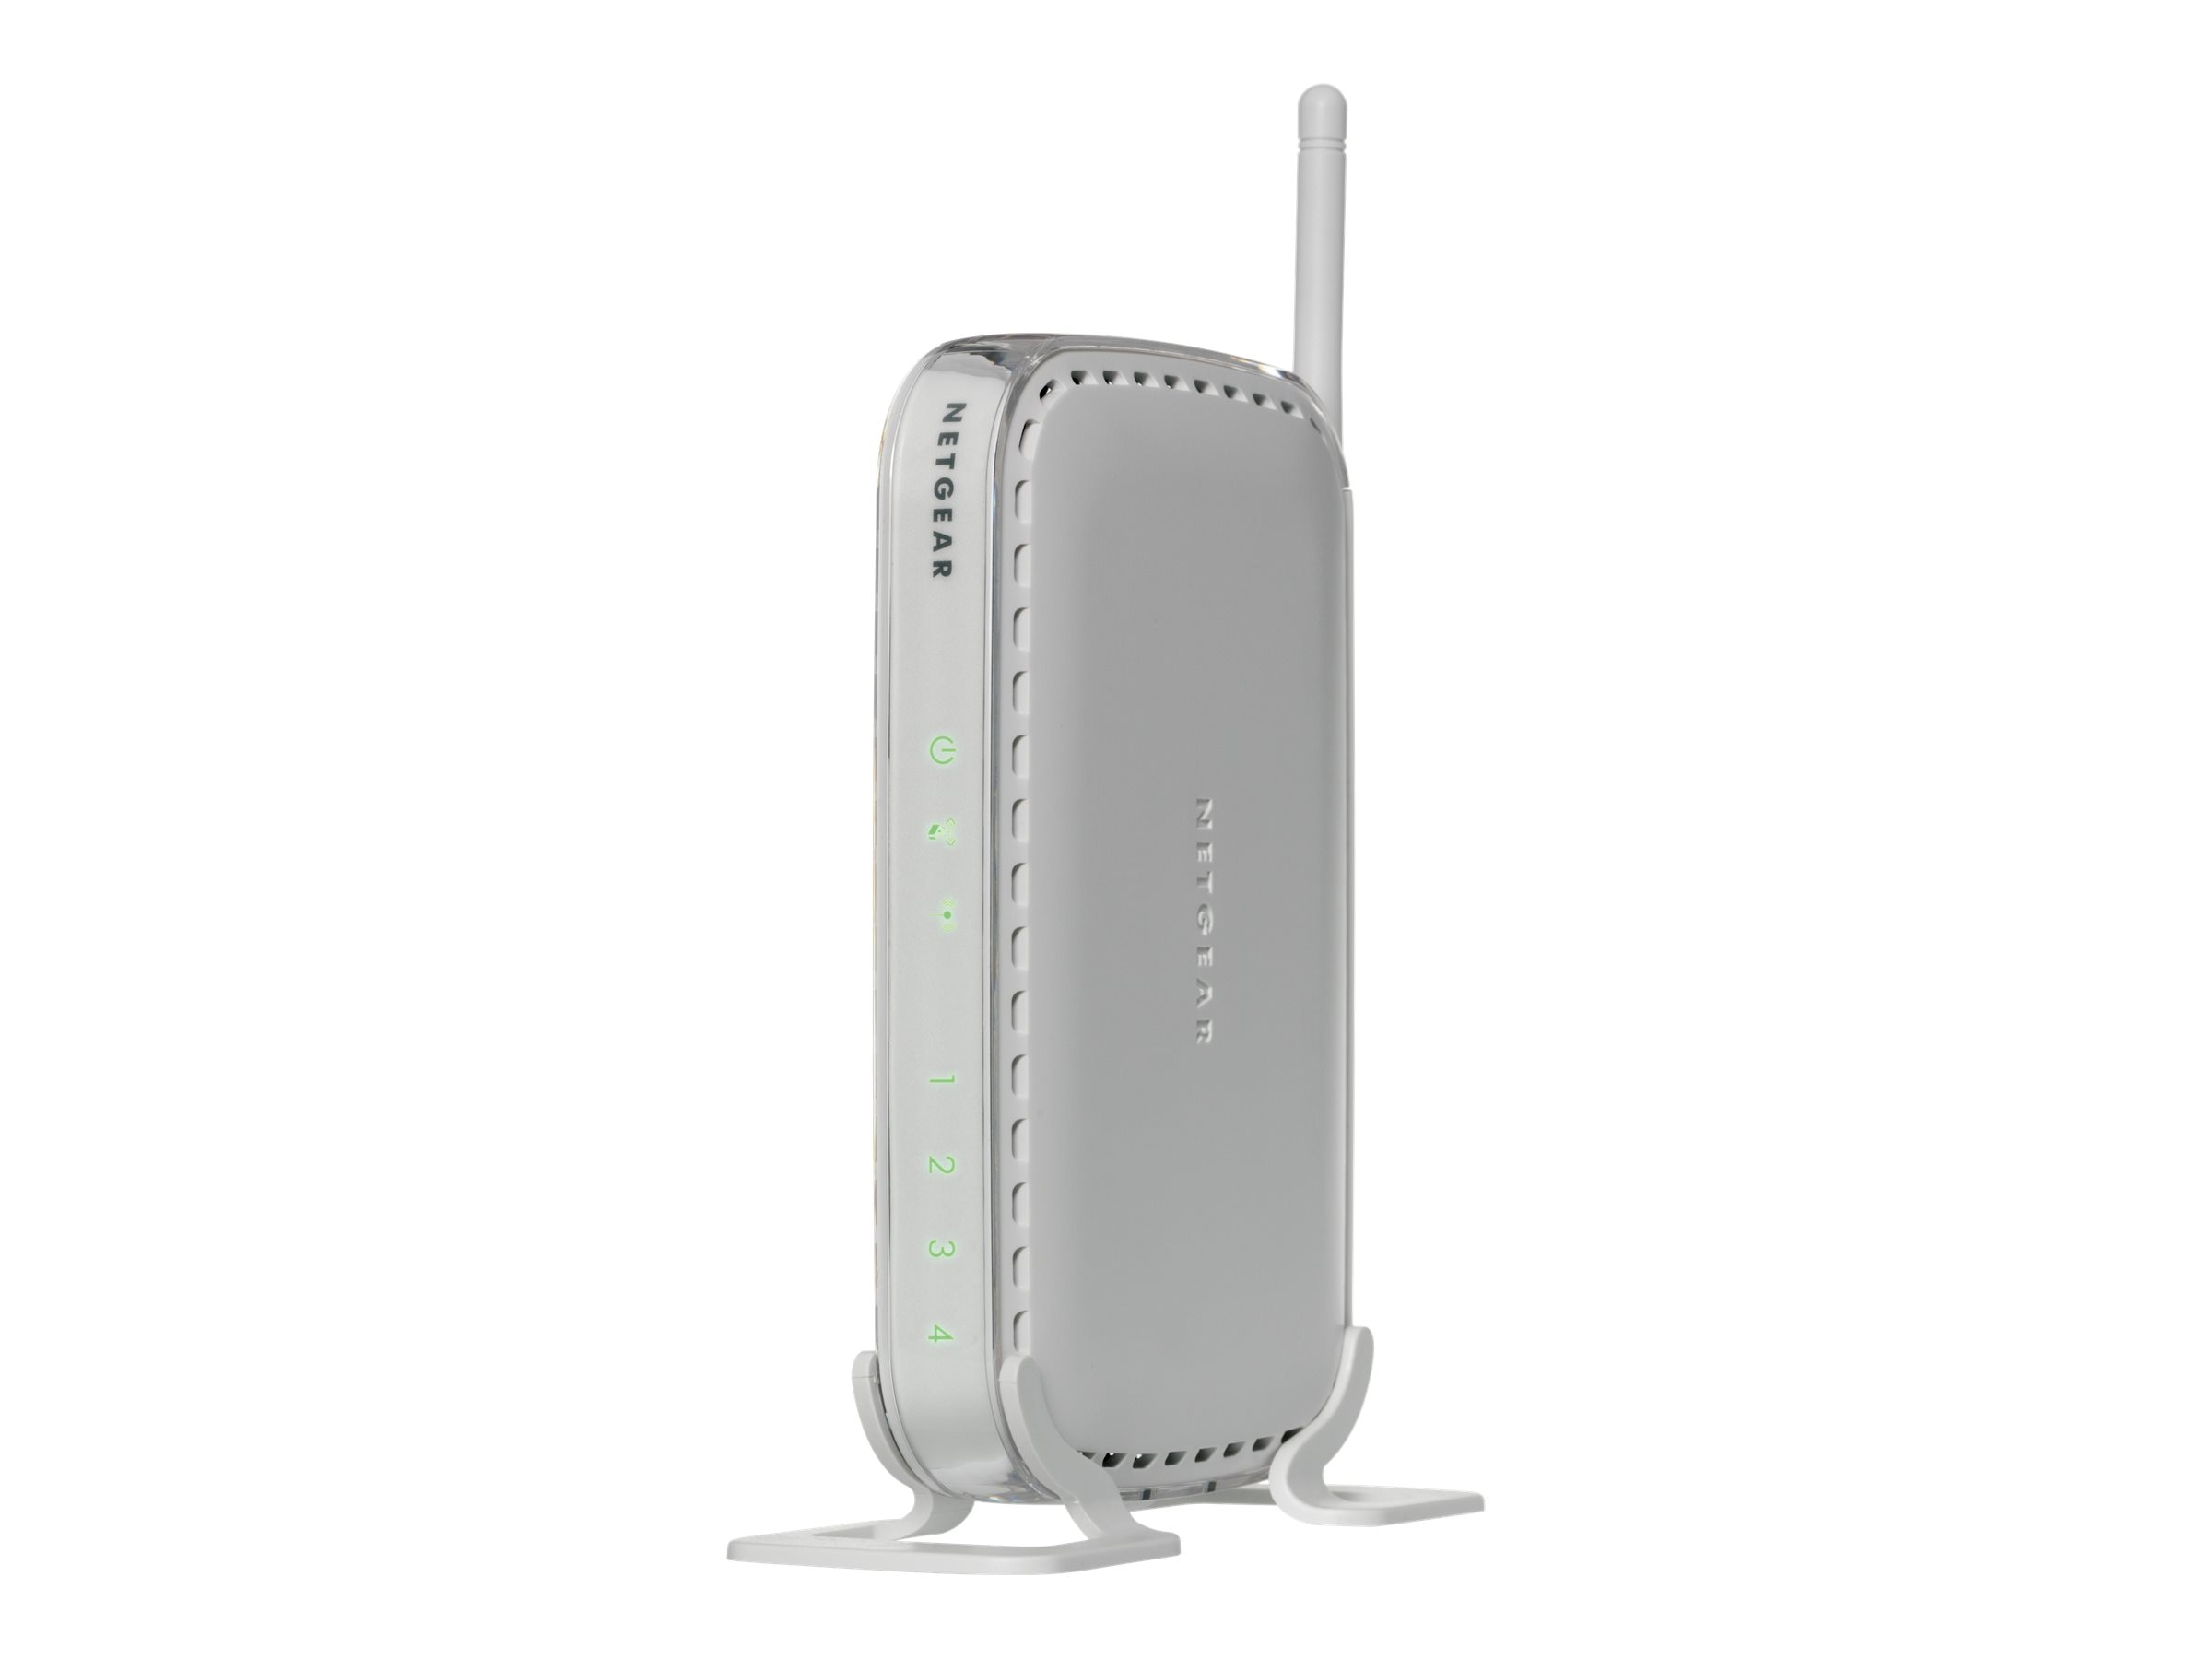 Netgear Wireless-N 150 Access Point, WN604-100NAS, 11647598, Wireless Access Points & Bridges